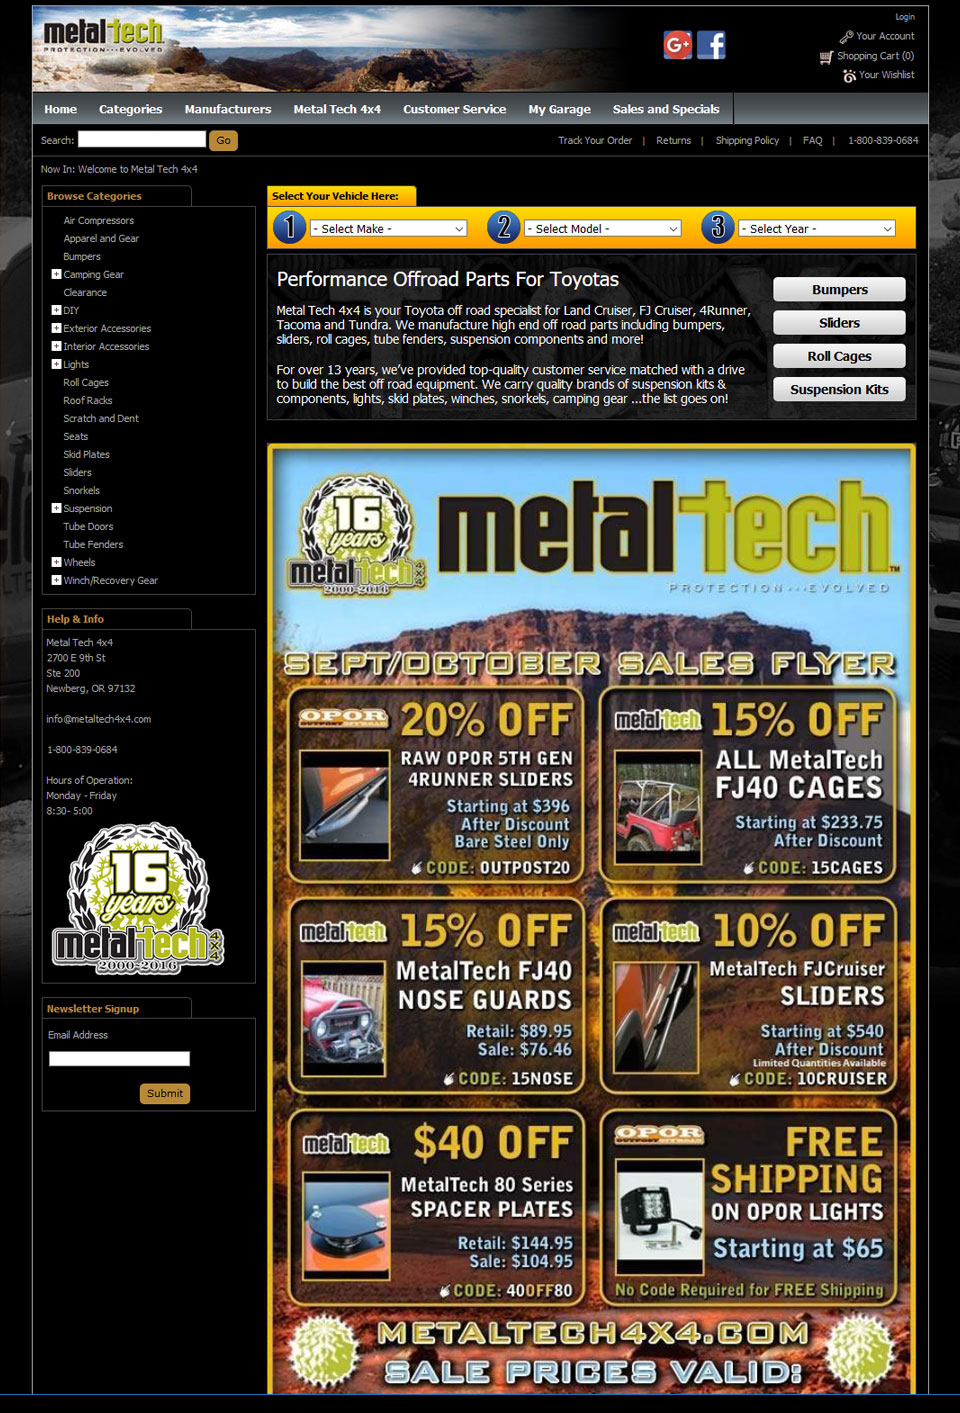 Metaltech 4×4 Website Design